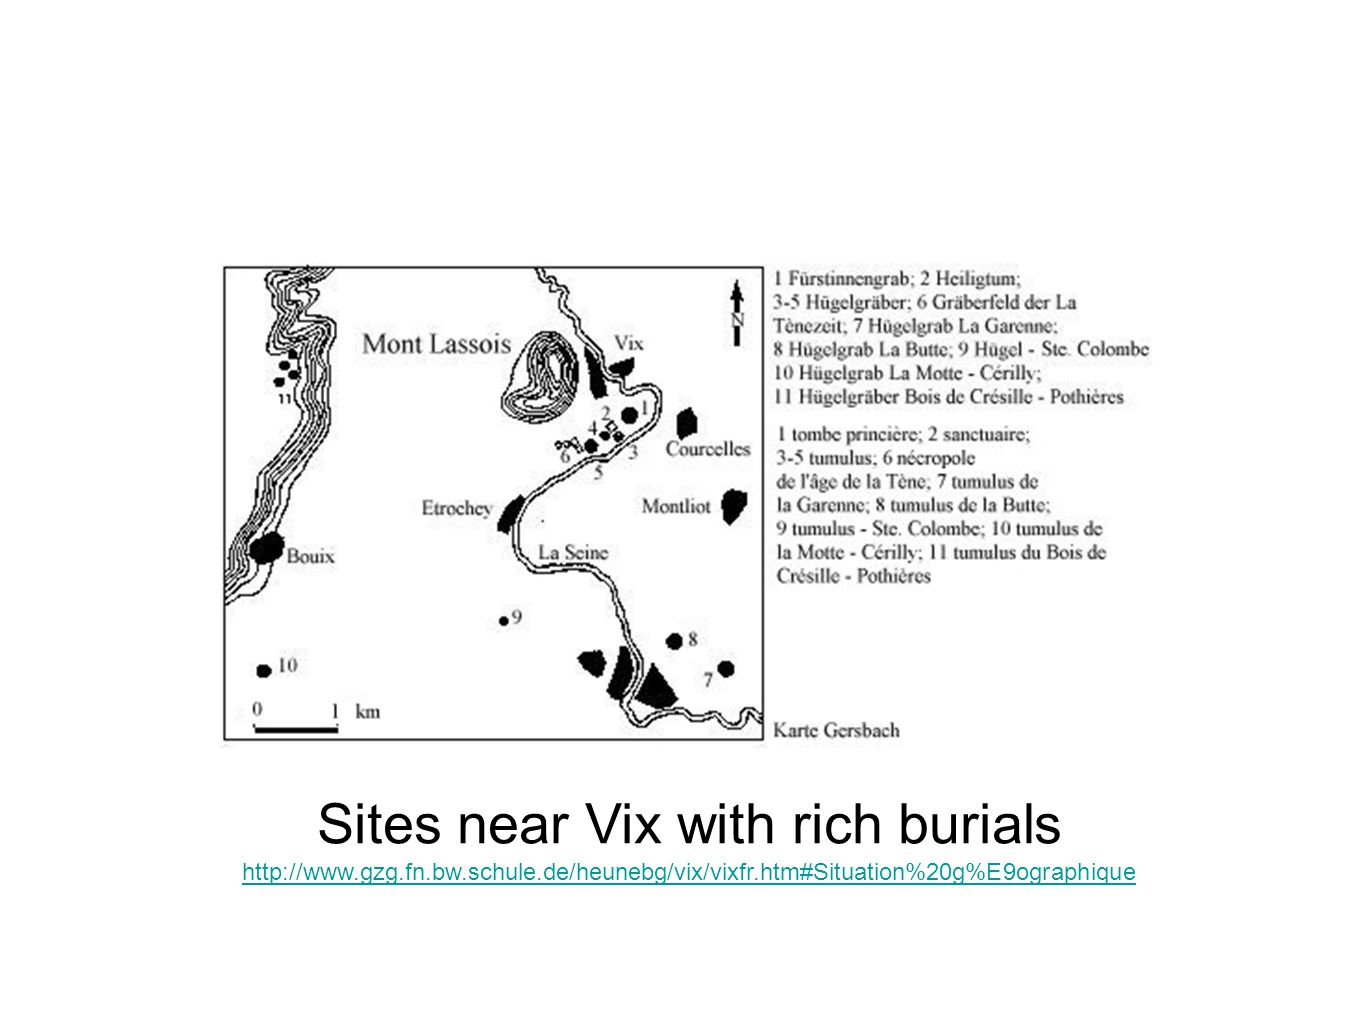 Sites near Vix with rich burials